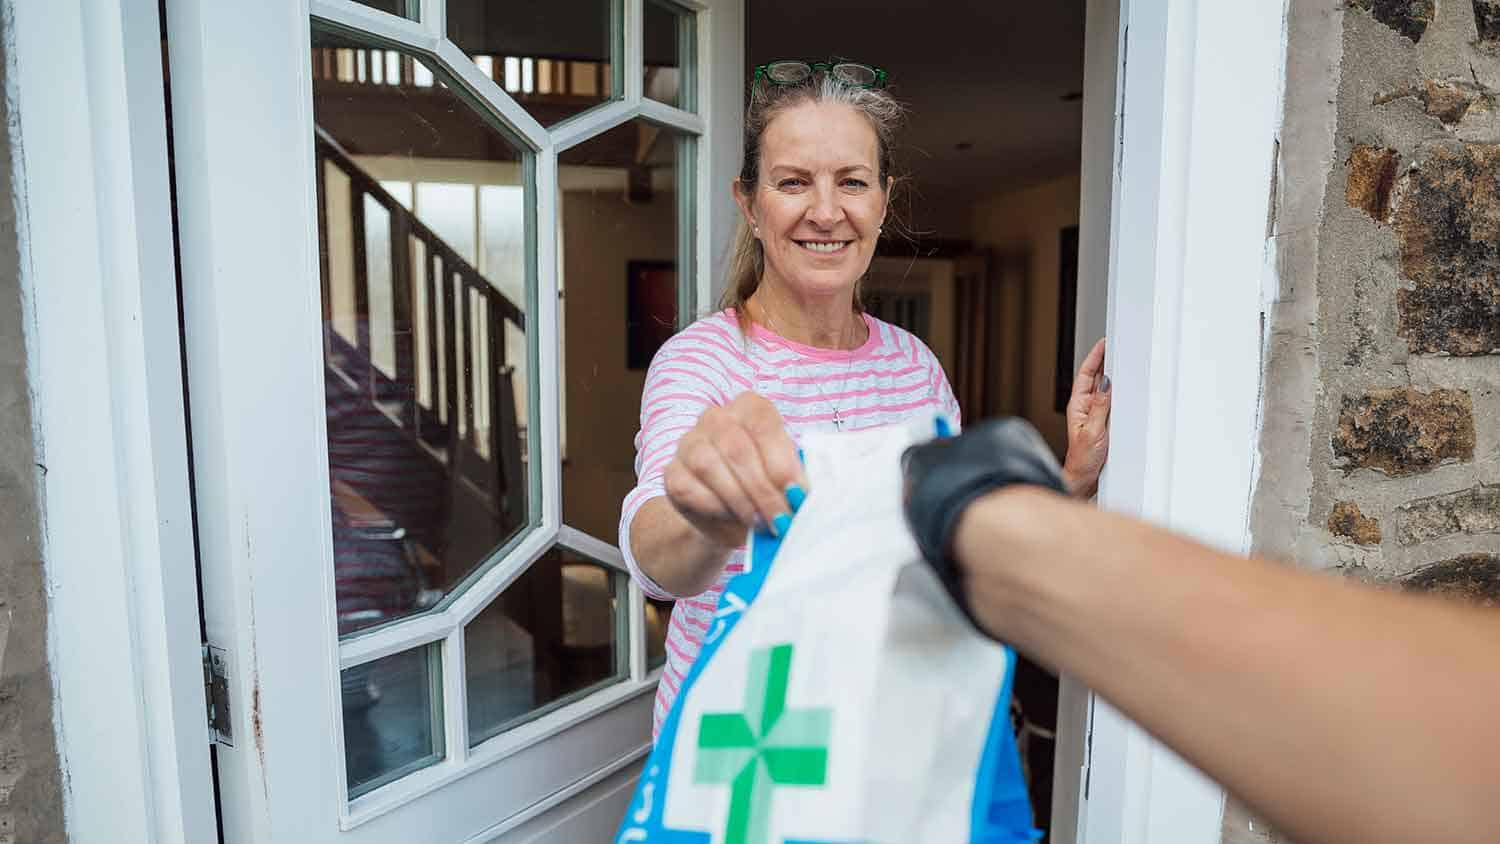 Delivery of a pharmacy prescription to a door opened by a middle aged woman grateful to receive